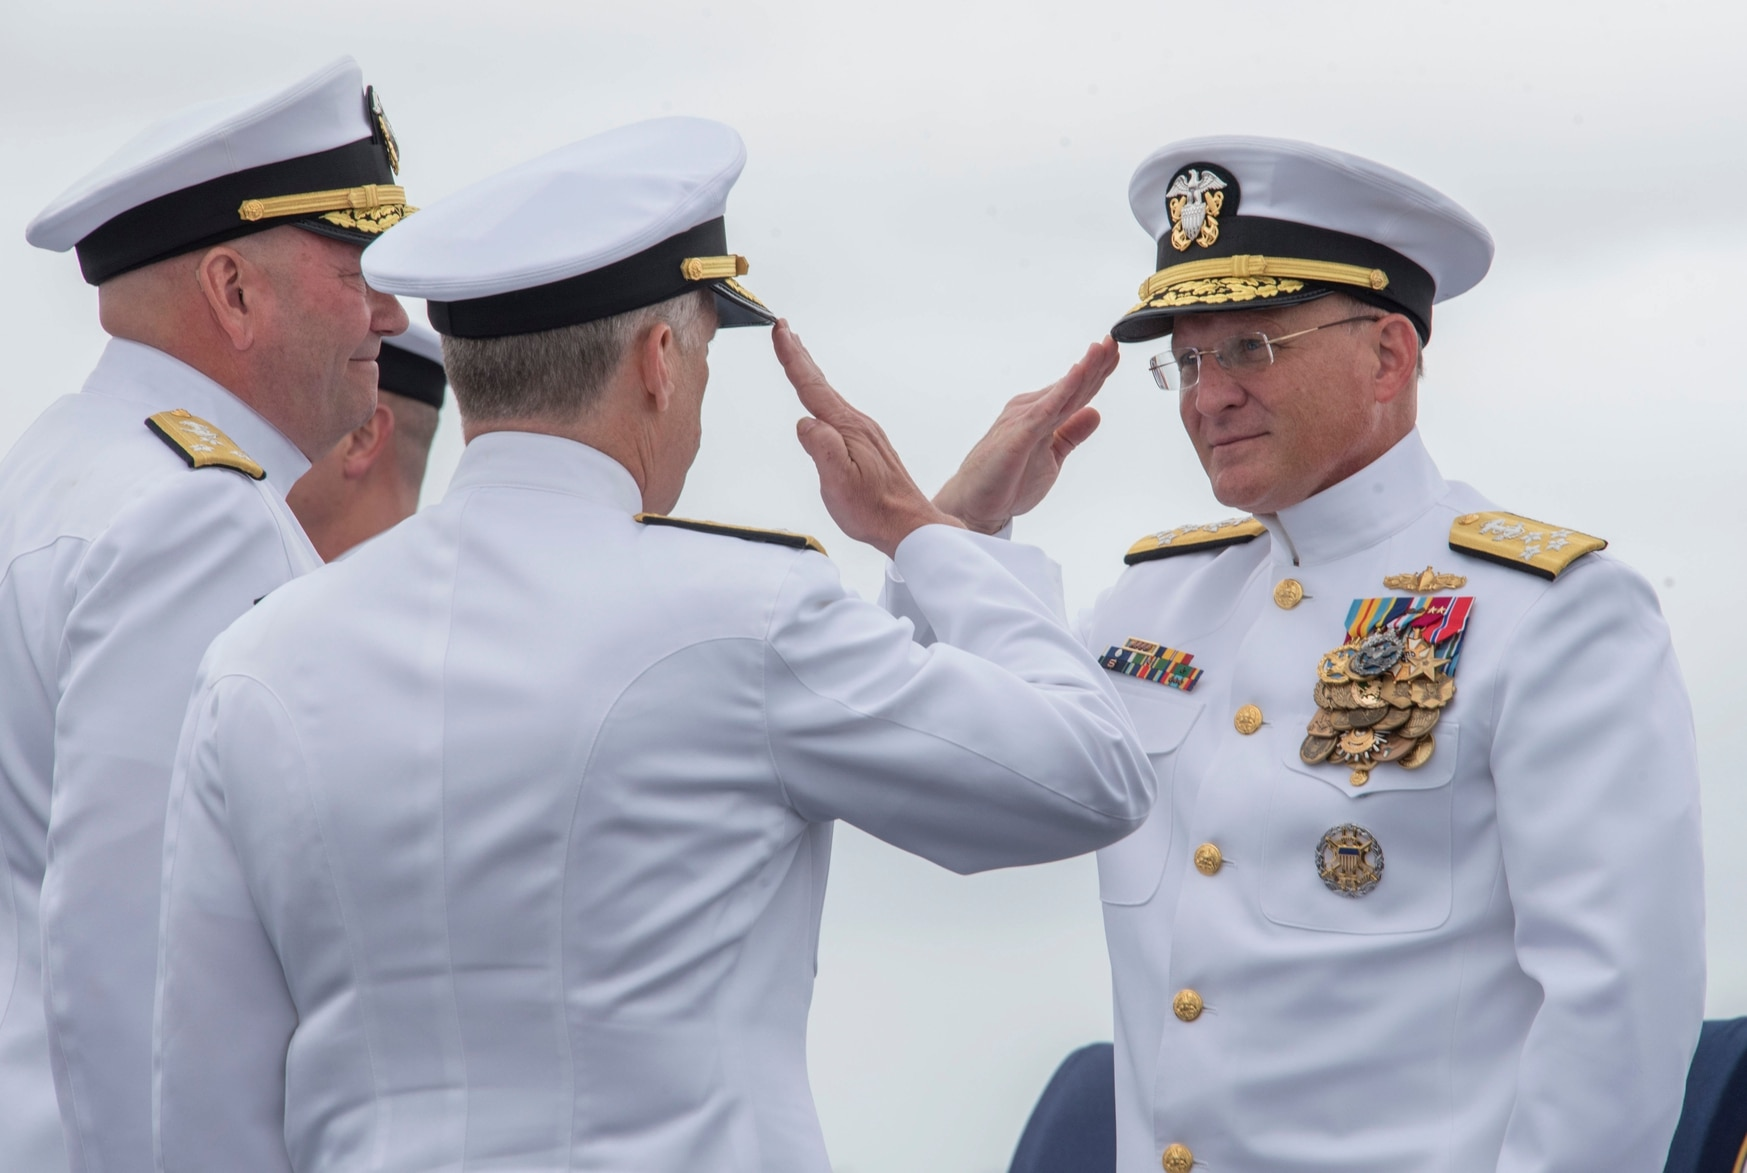 Chief of Naval Operations Adm. Michael Gilday, right, has said the Navy's top-line budget has to grow if the fleet is to add ships. (MC3 Casey Trietsch/U.S. Navy)